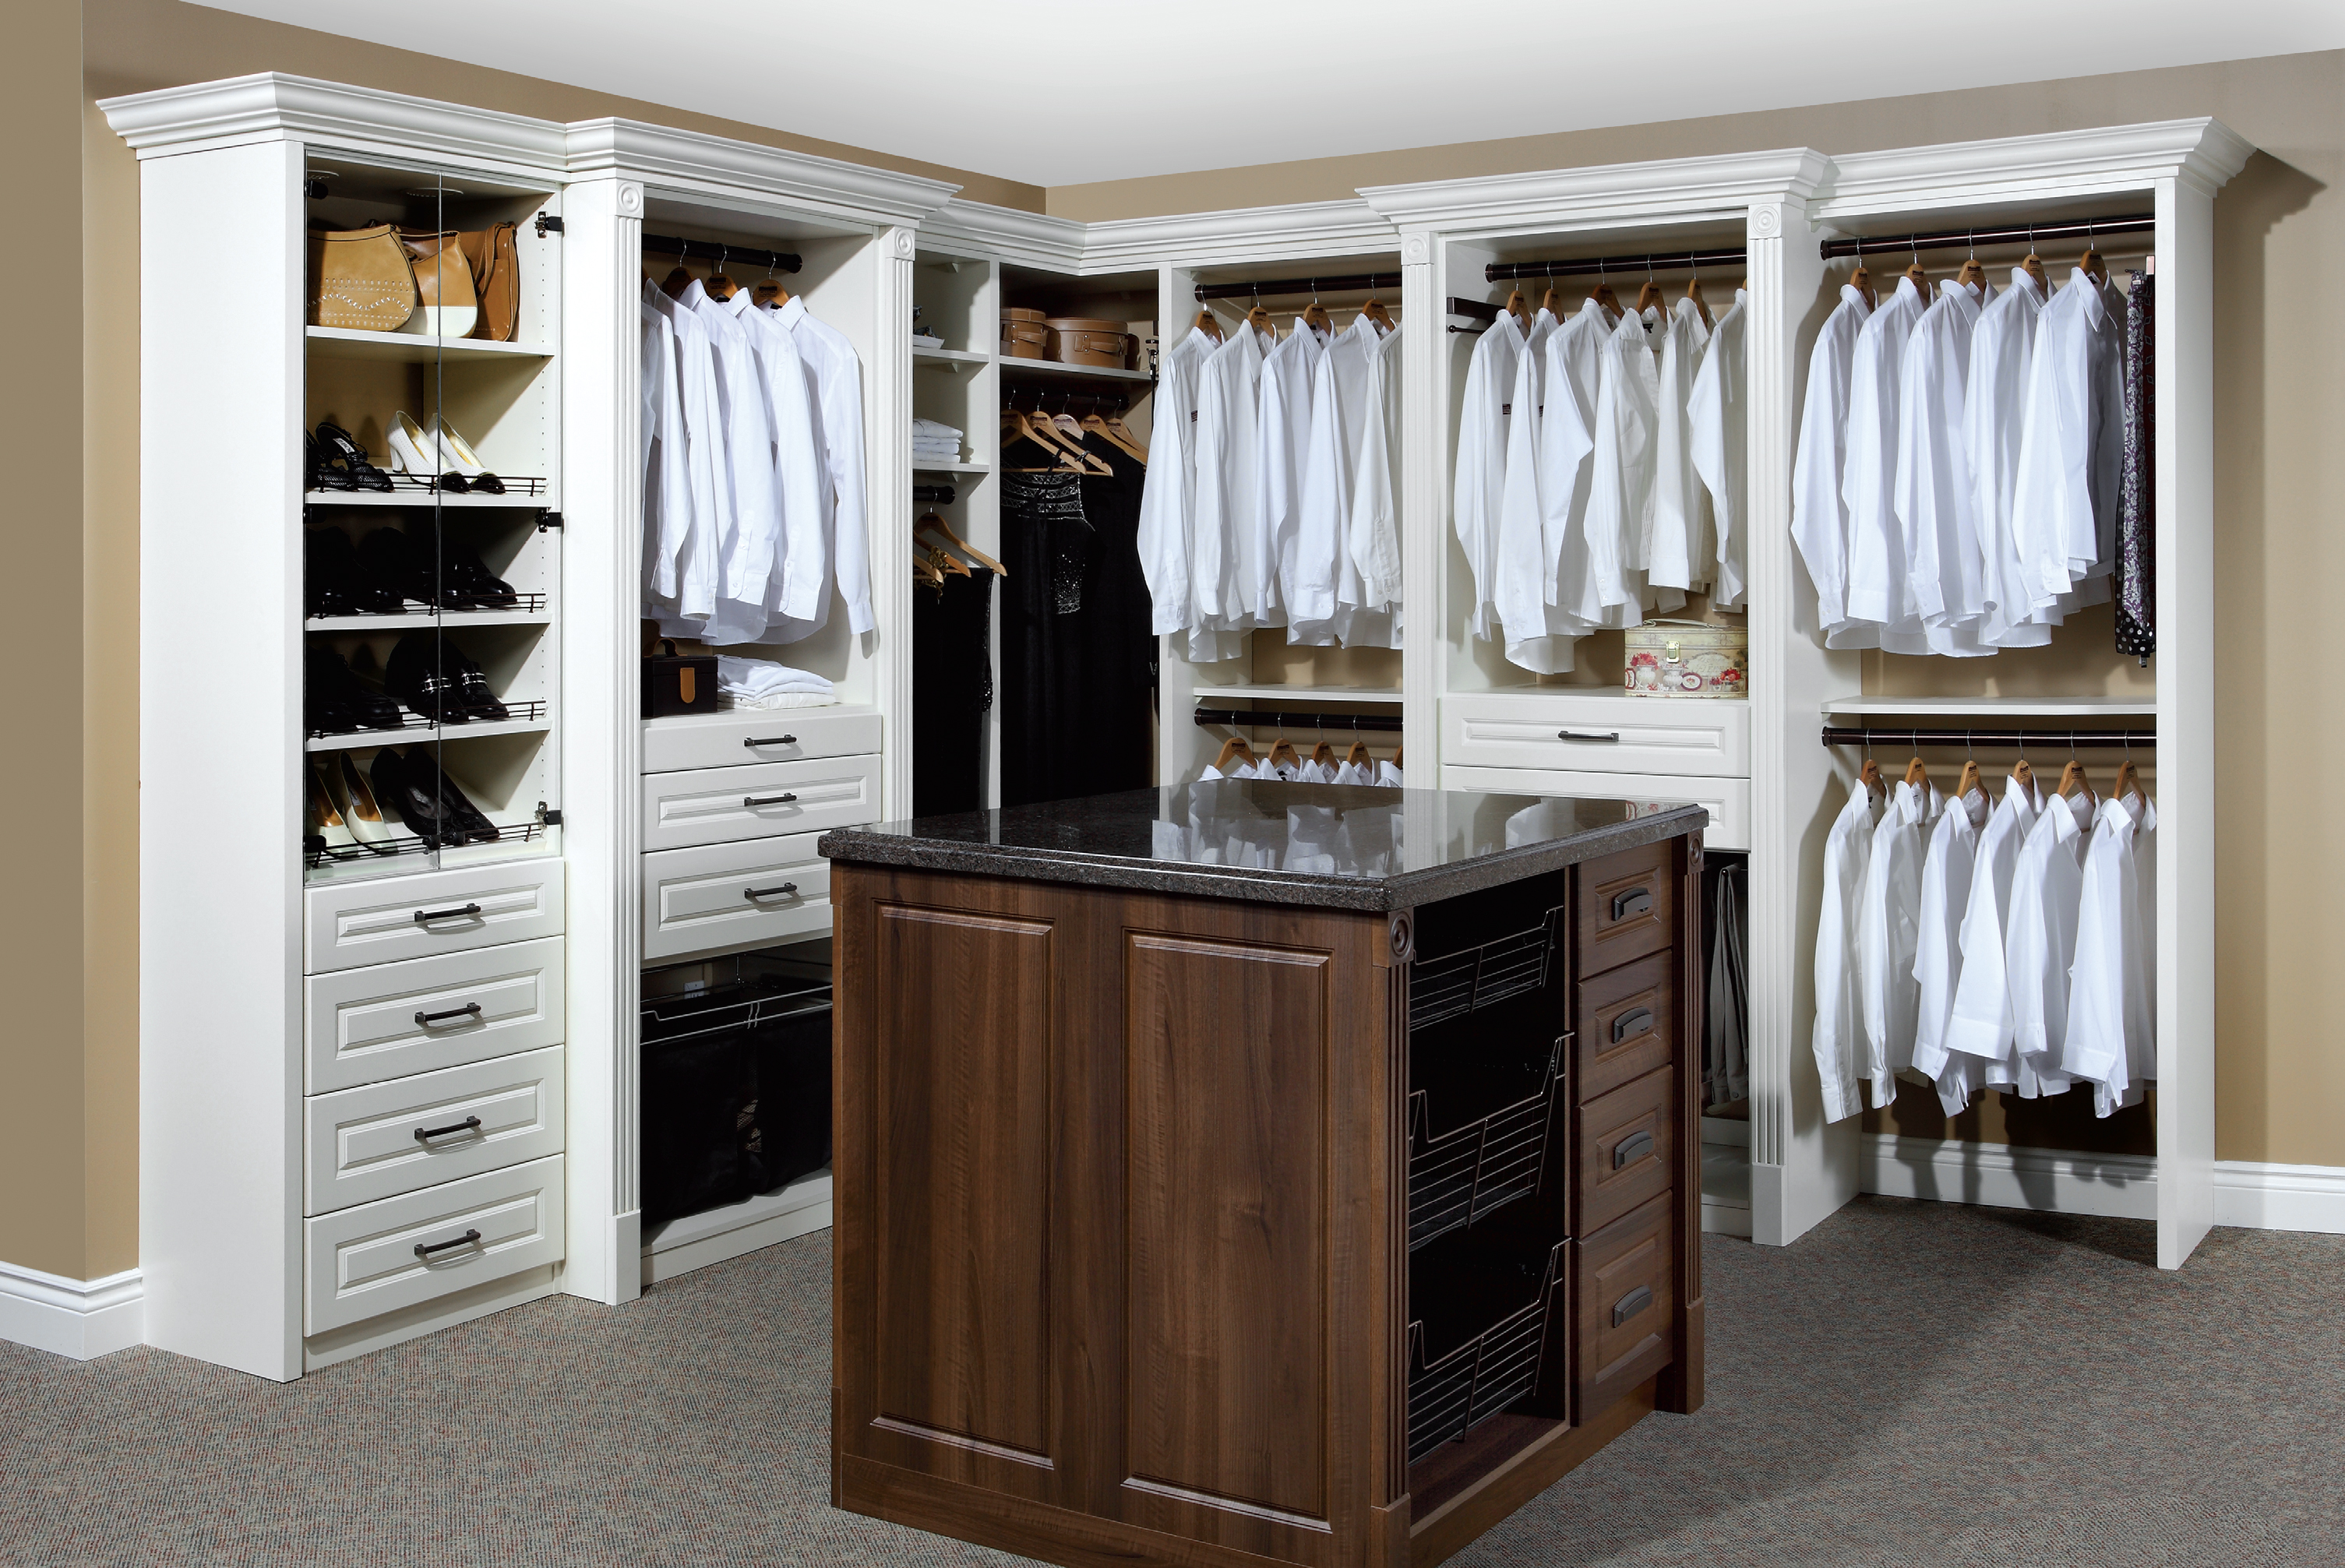 Closets Design Ideas big closet design ideas Shaped Walk Closet Design Ideas Closet Systems Design Ideas